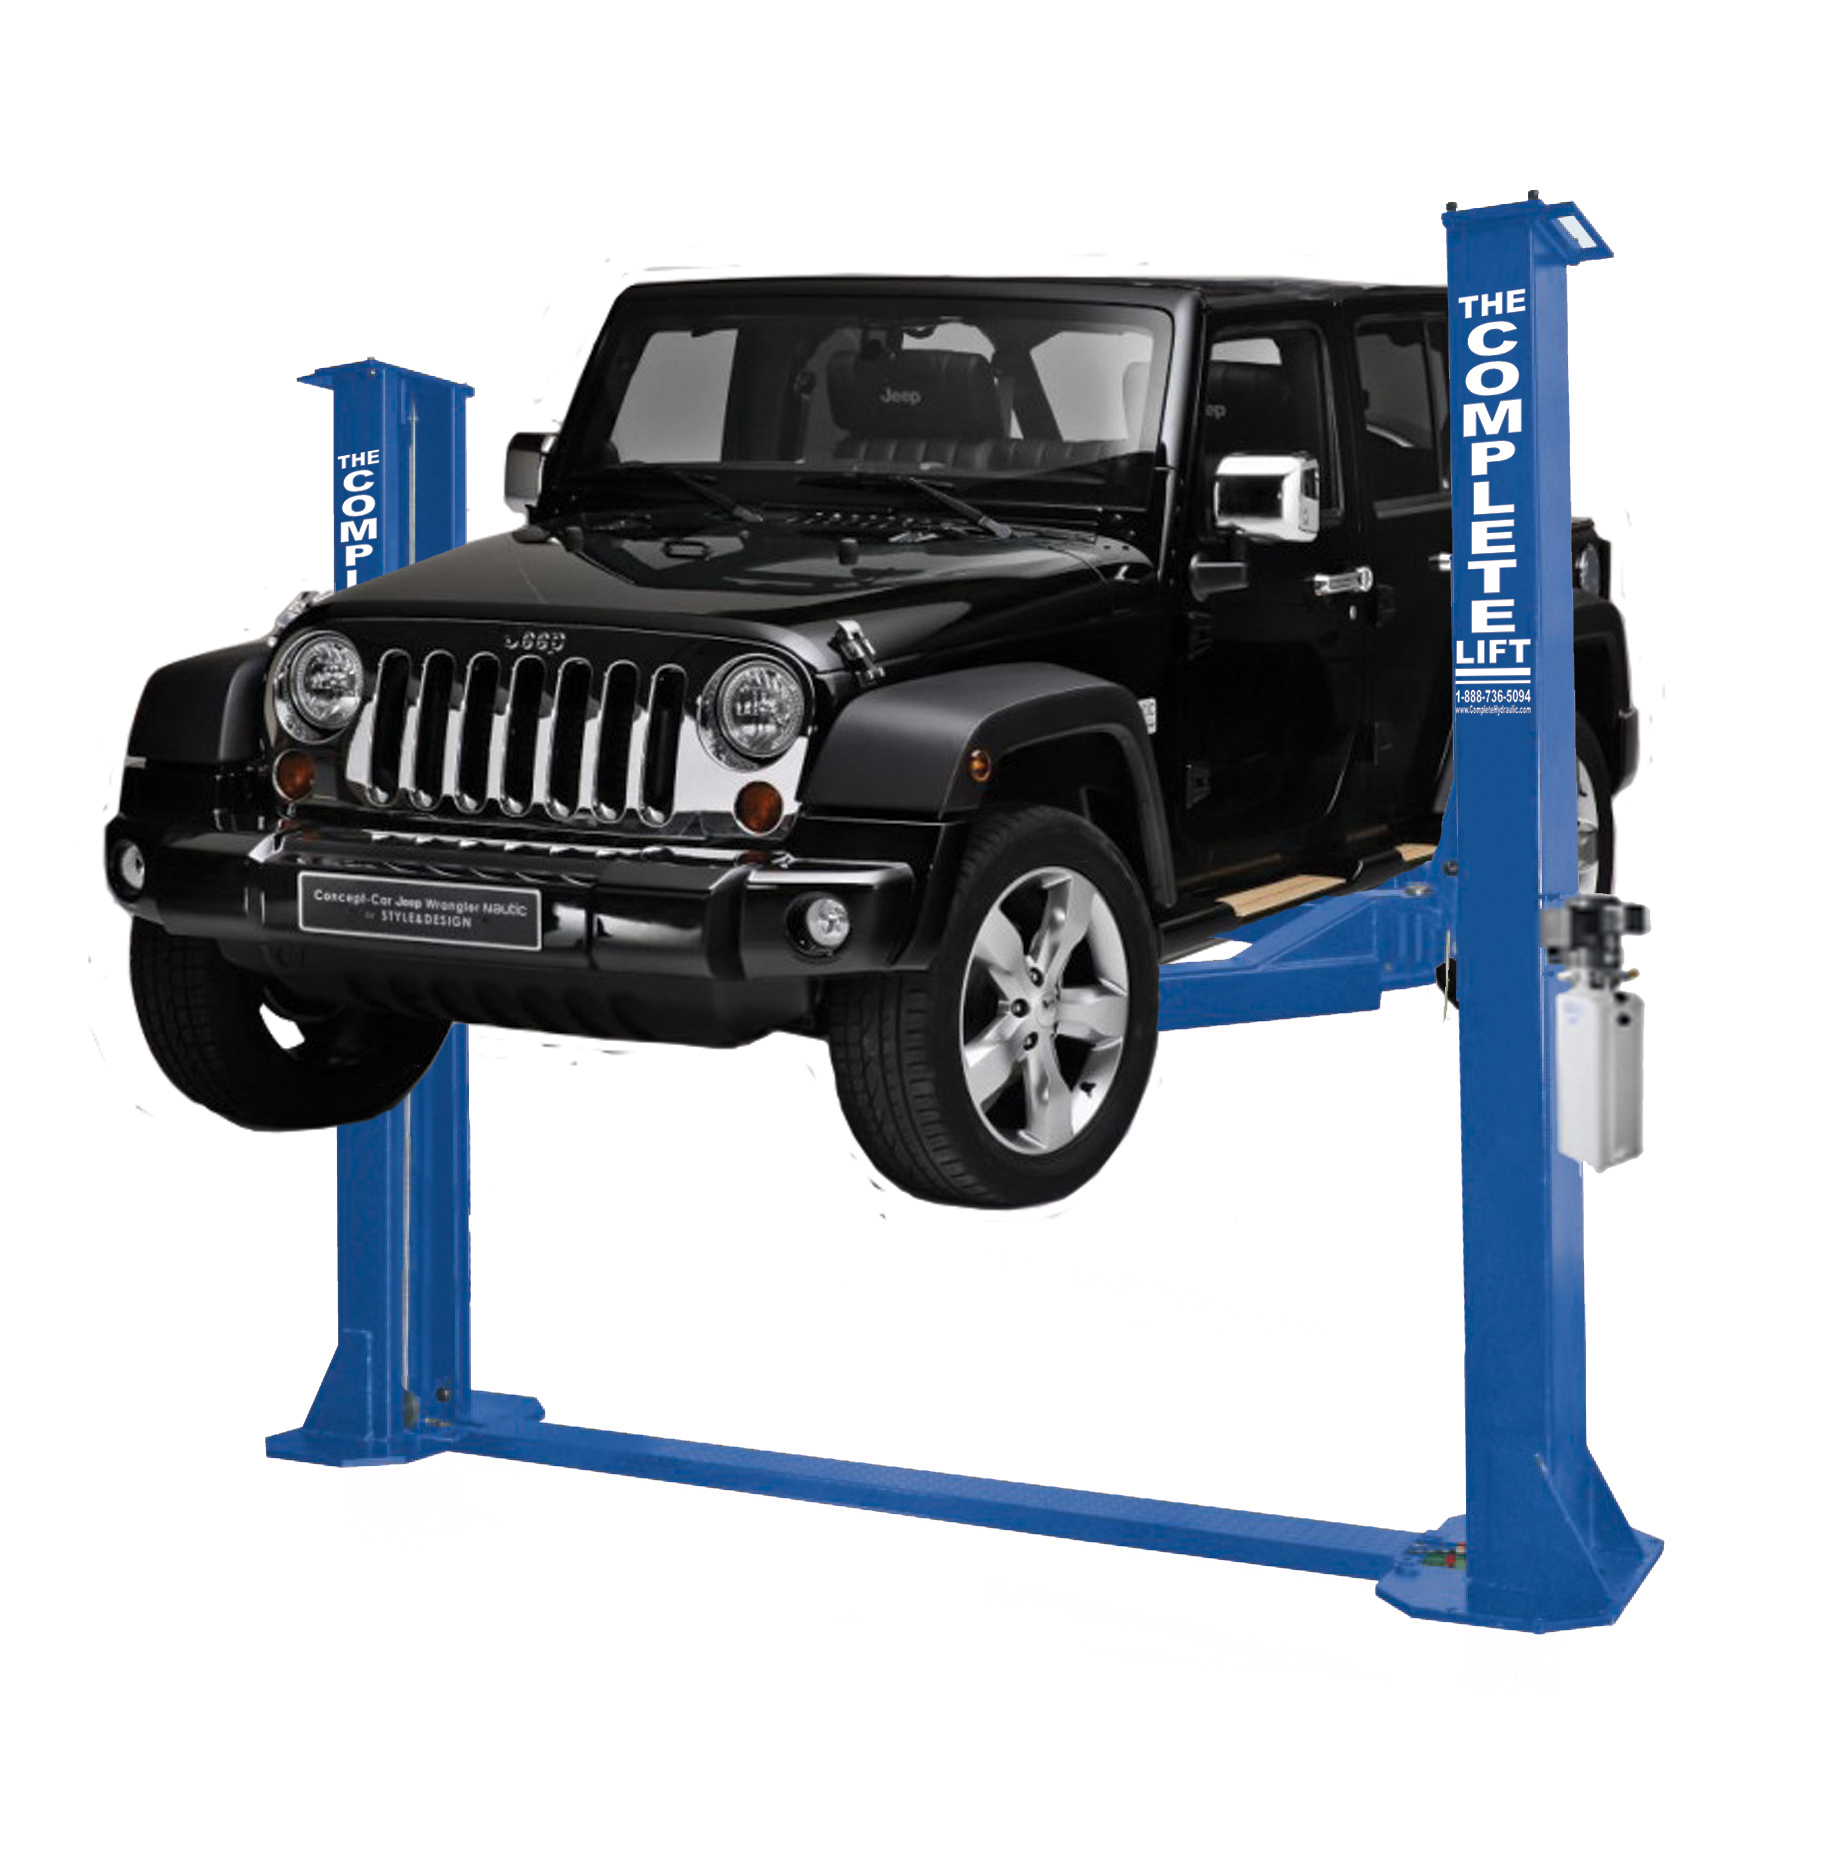 <clt></clt> 12,000 BP Heavy Duty 2 Post Lift